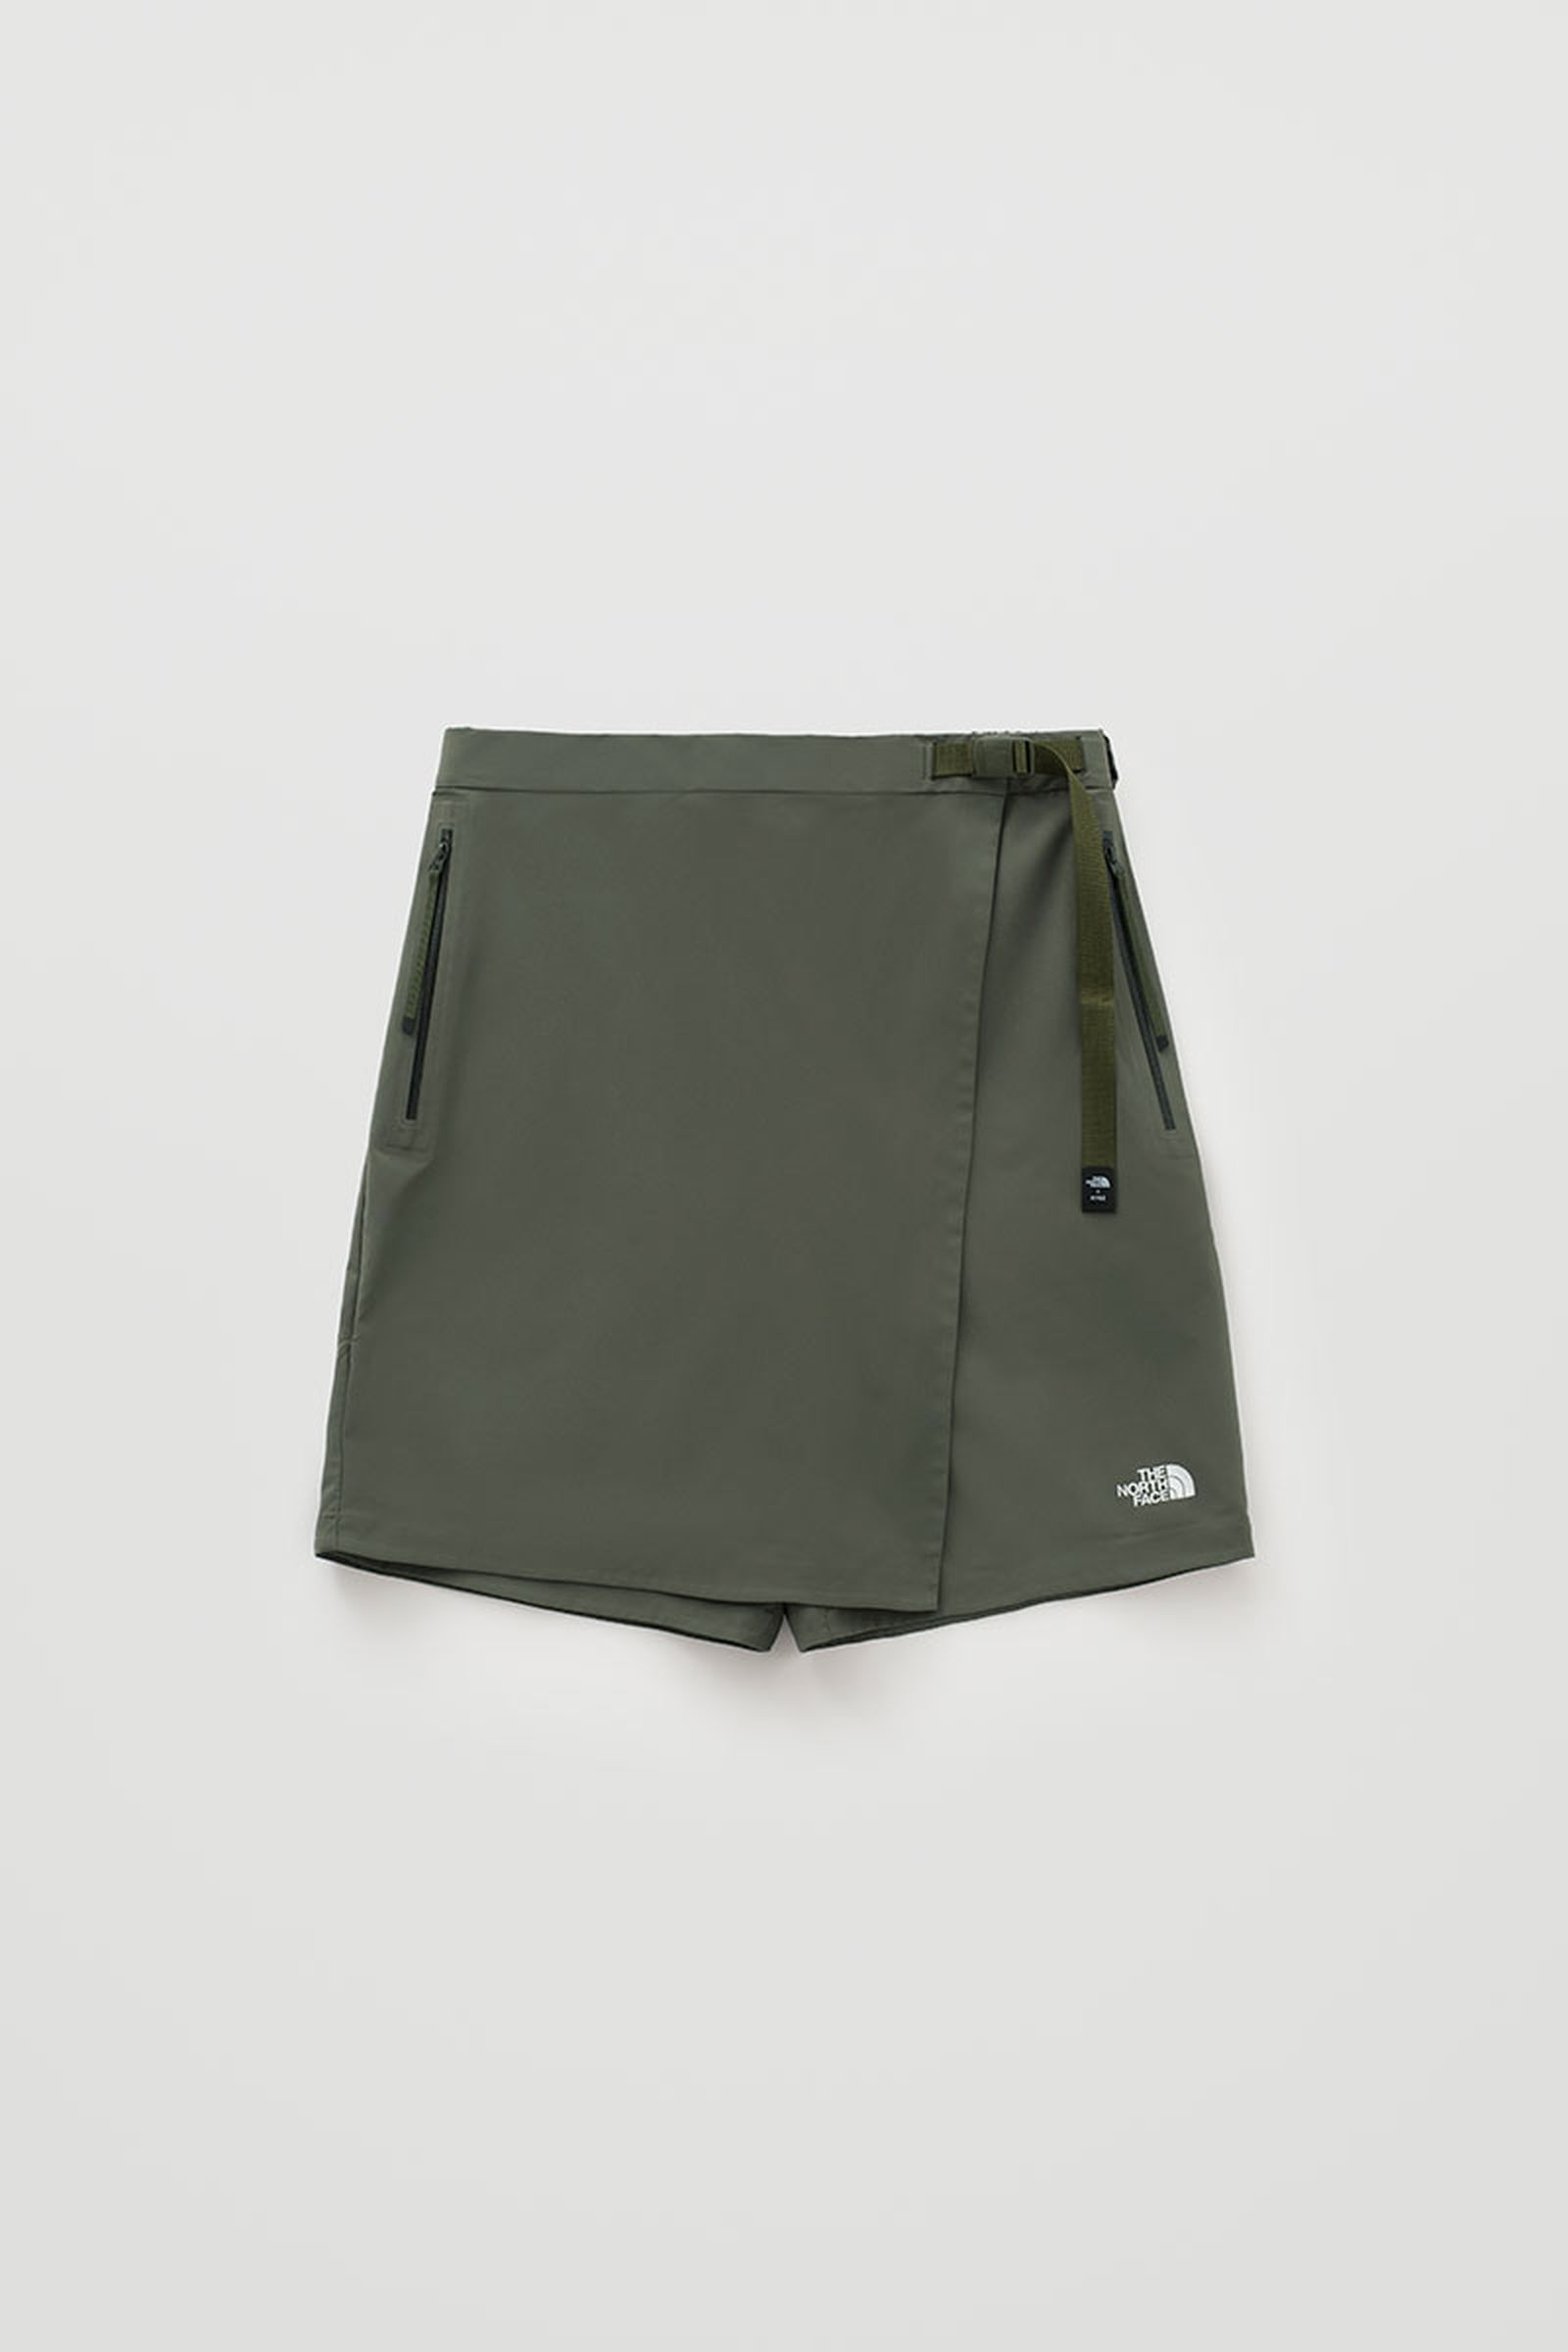 north face hyke fw19 collection The North Face